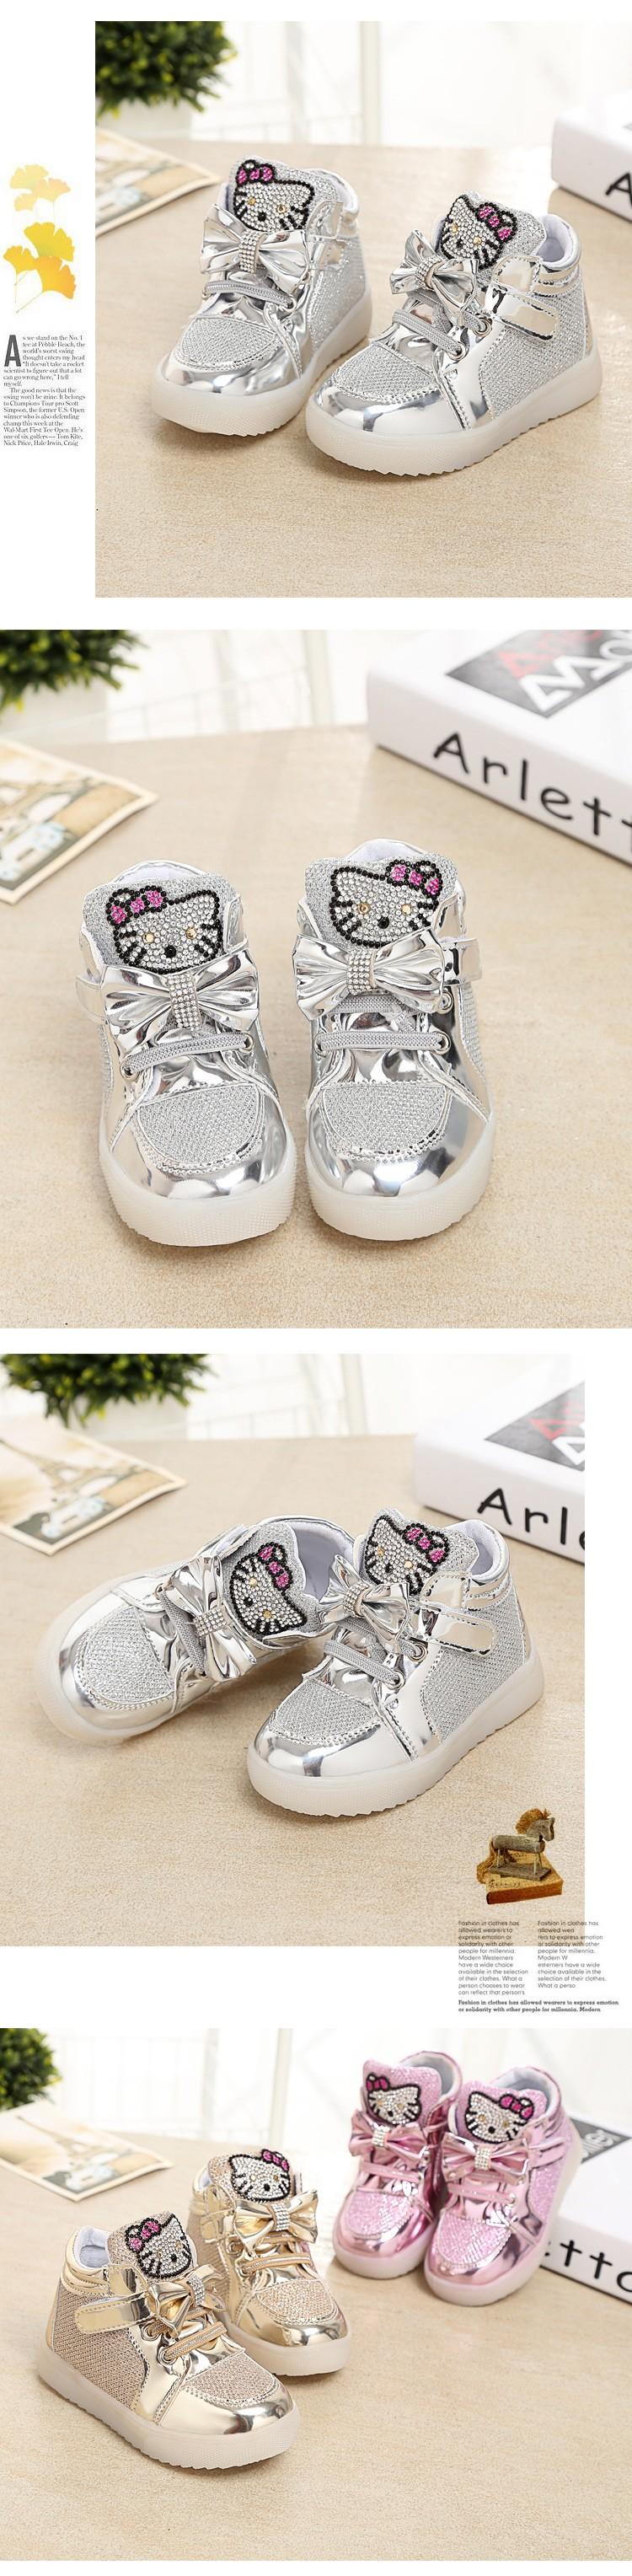 Baby Cartoon LED Light Boots